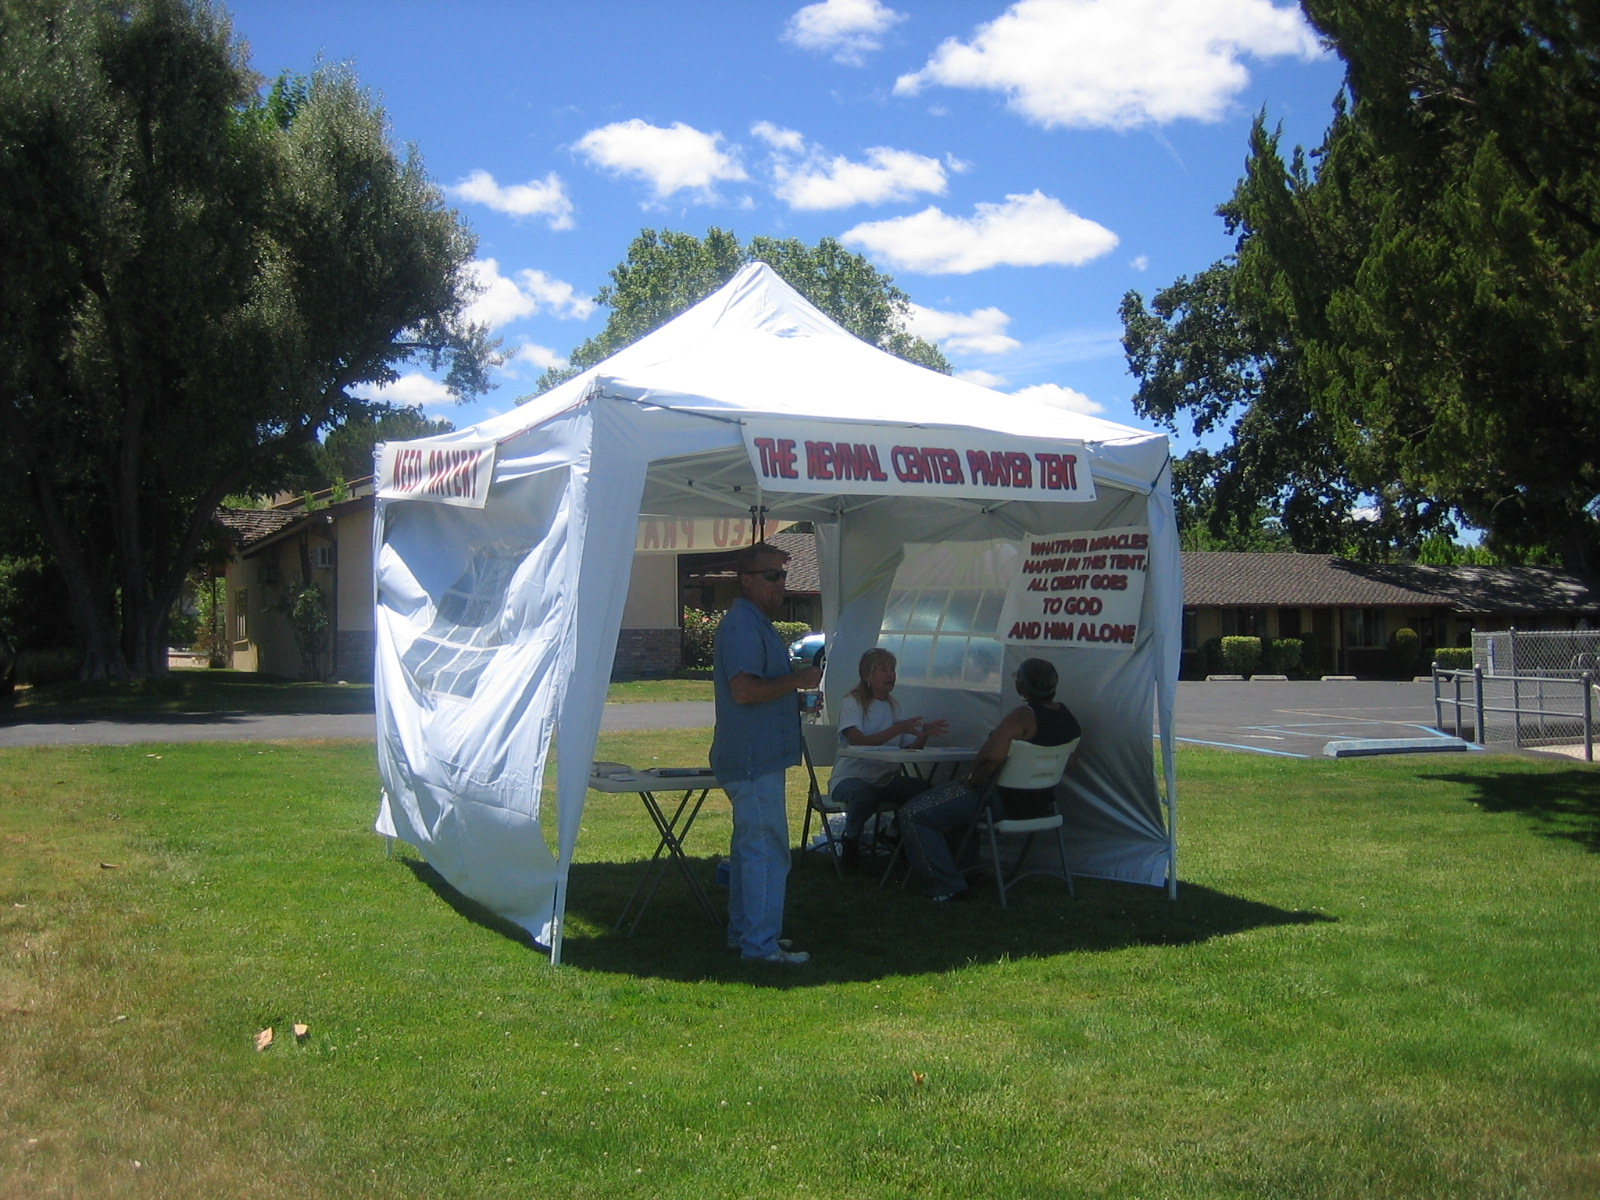 & The Revival Center Blog: The Revival Center Prayer Tent